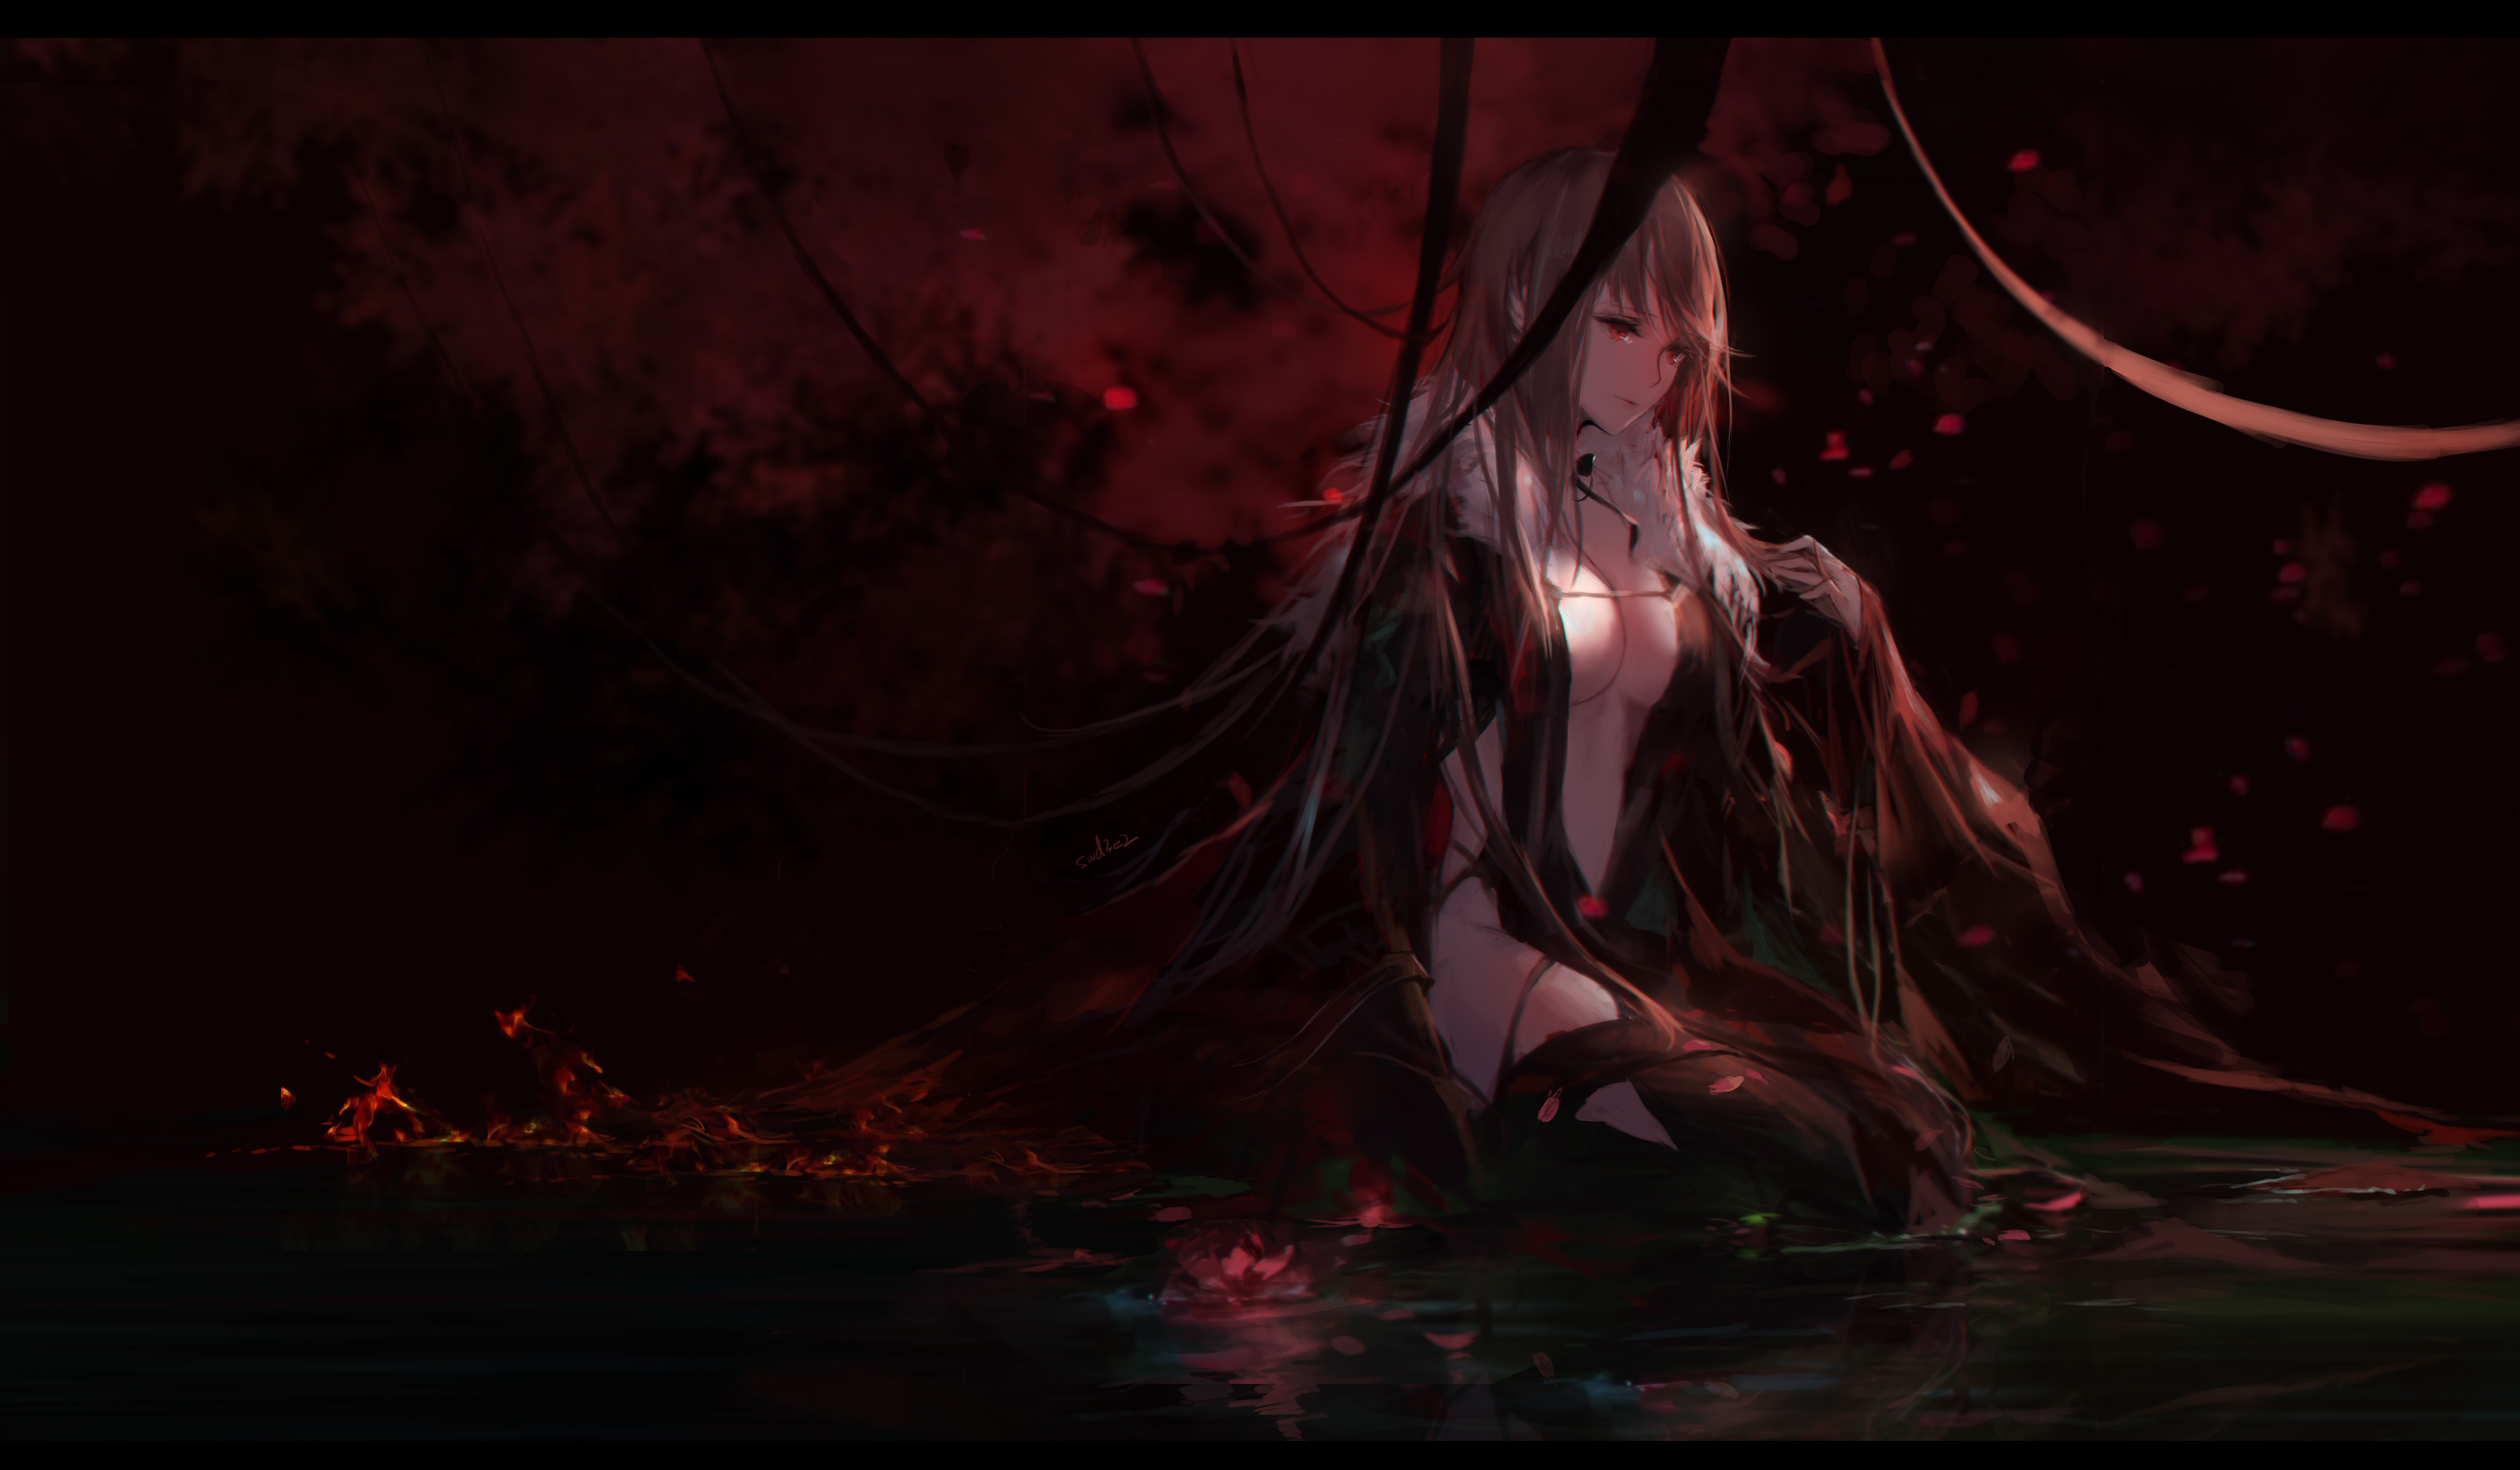 ANIME-PICTURES.NET_-_575885-3543x2067-fate+%28series%29-fategrand+order-consort+yu+%28fate%29-swd3e2-long+hair-single.jpg